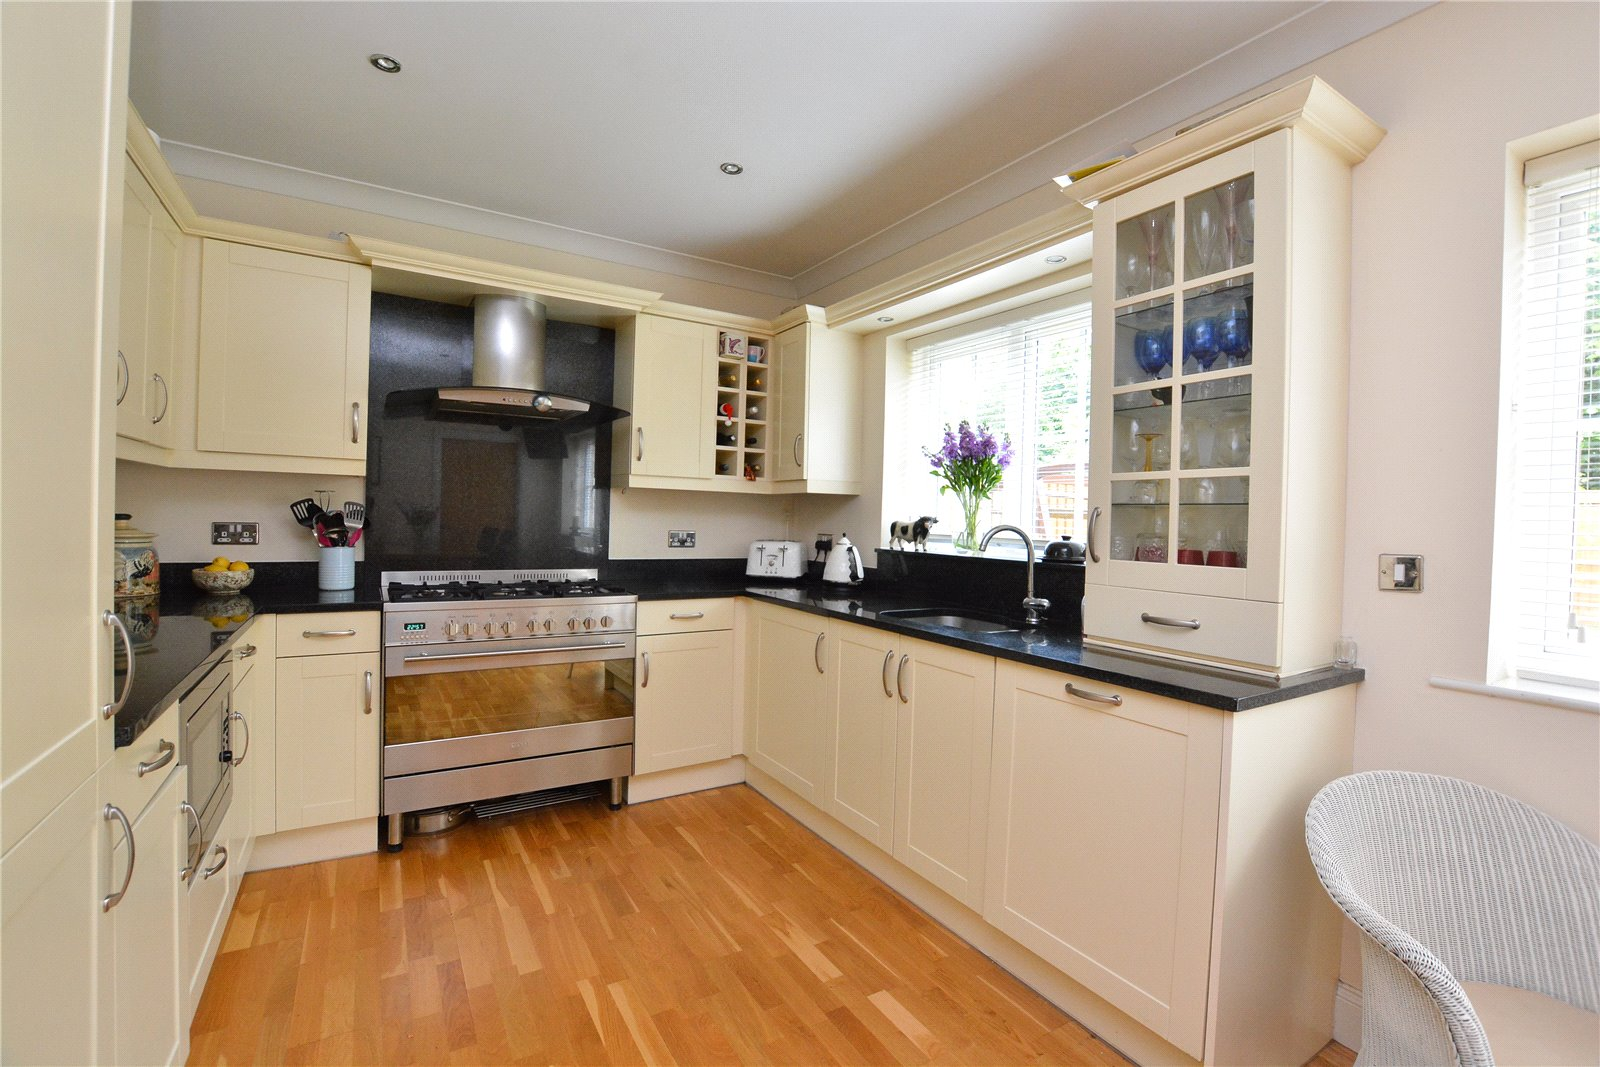 property for sale in Wtherby, kitchen area. beige cabinets